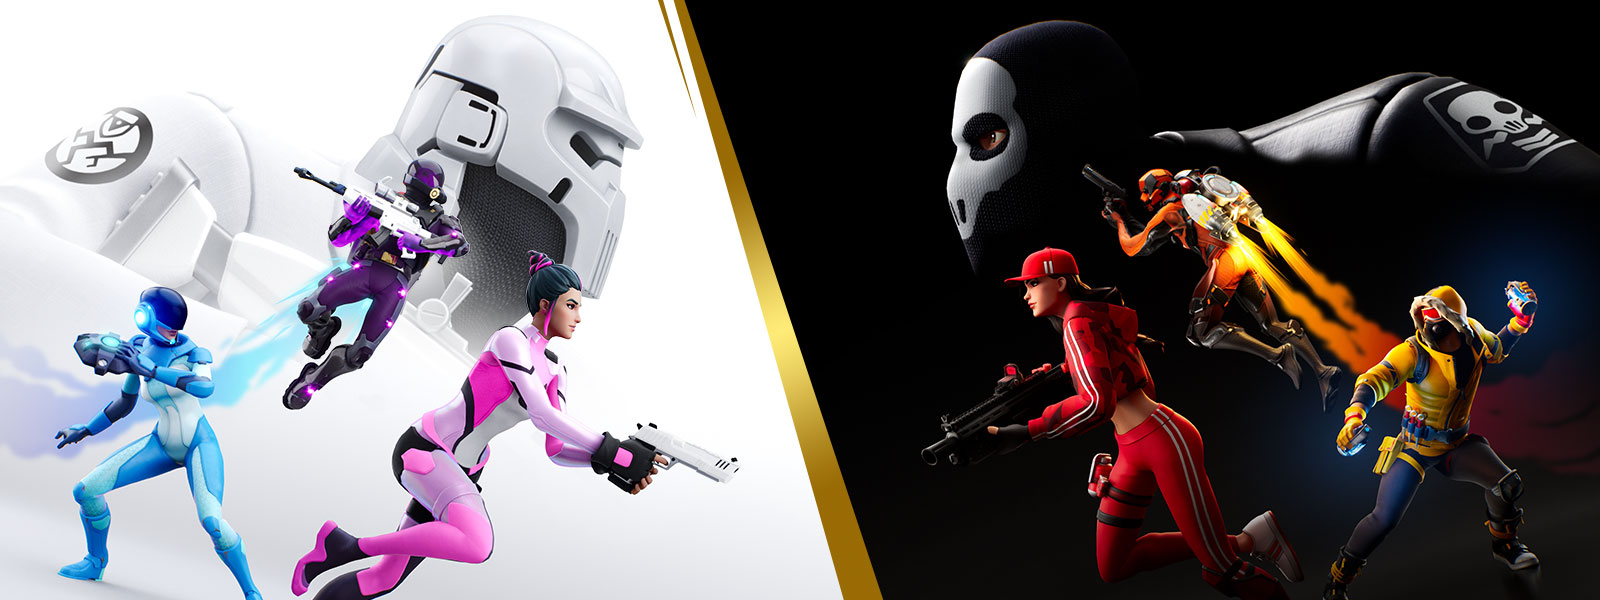 Two opposing Fortnite teams face each other in Spy skins.